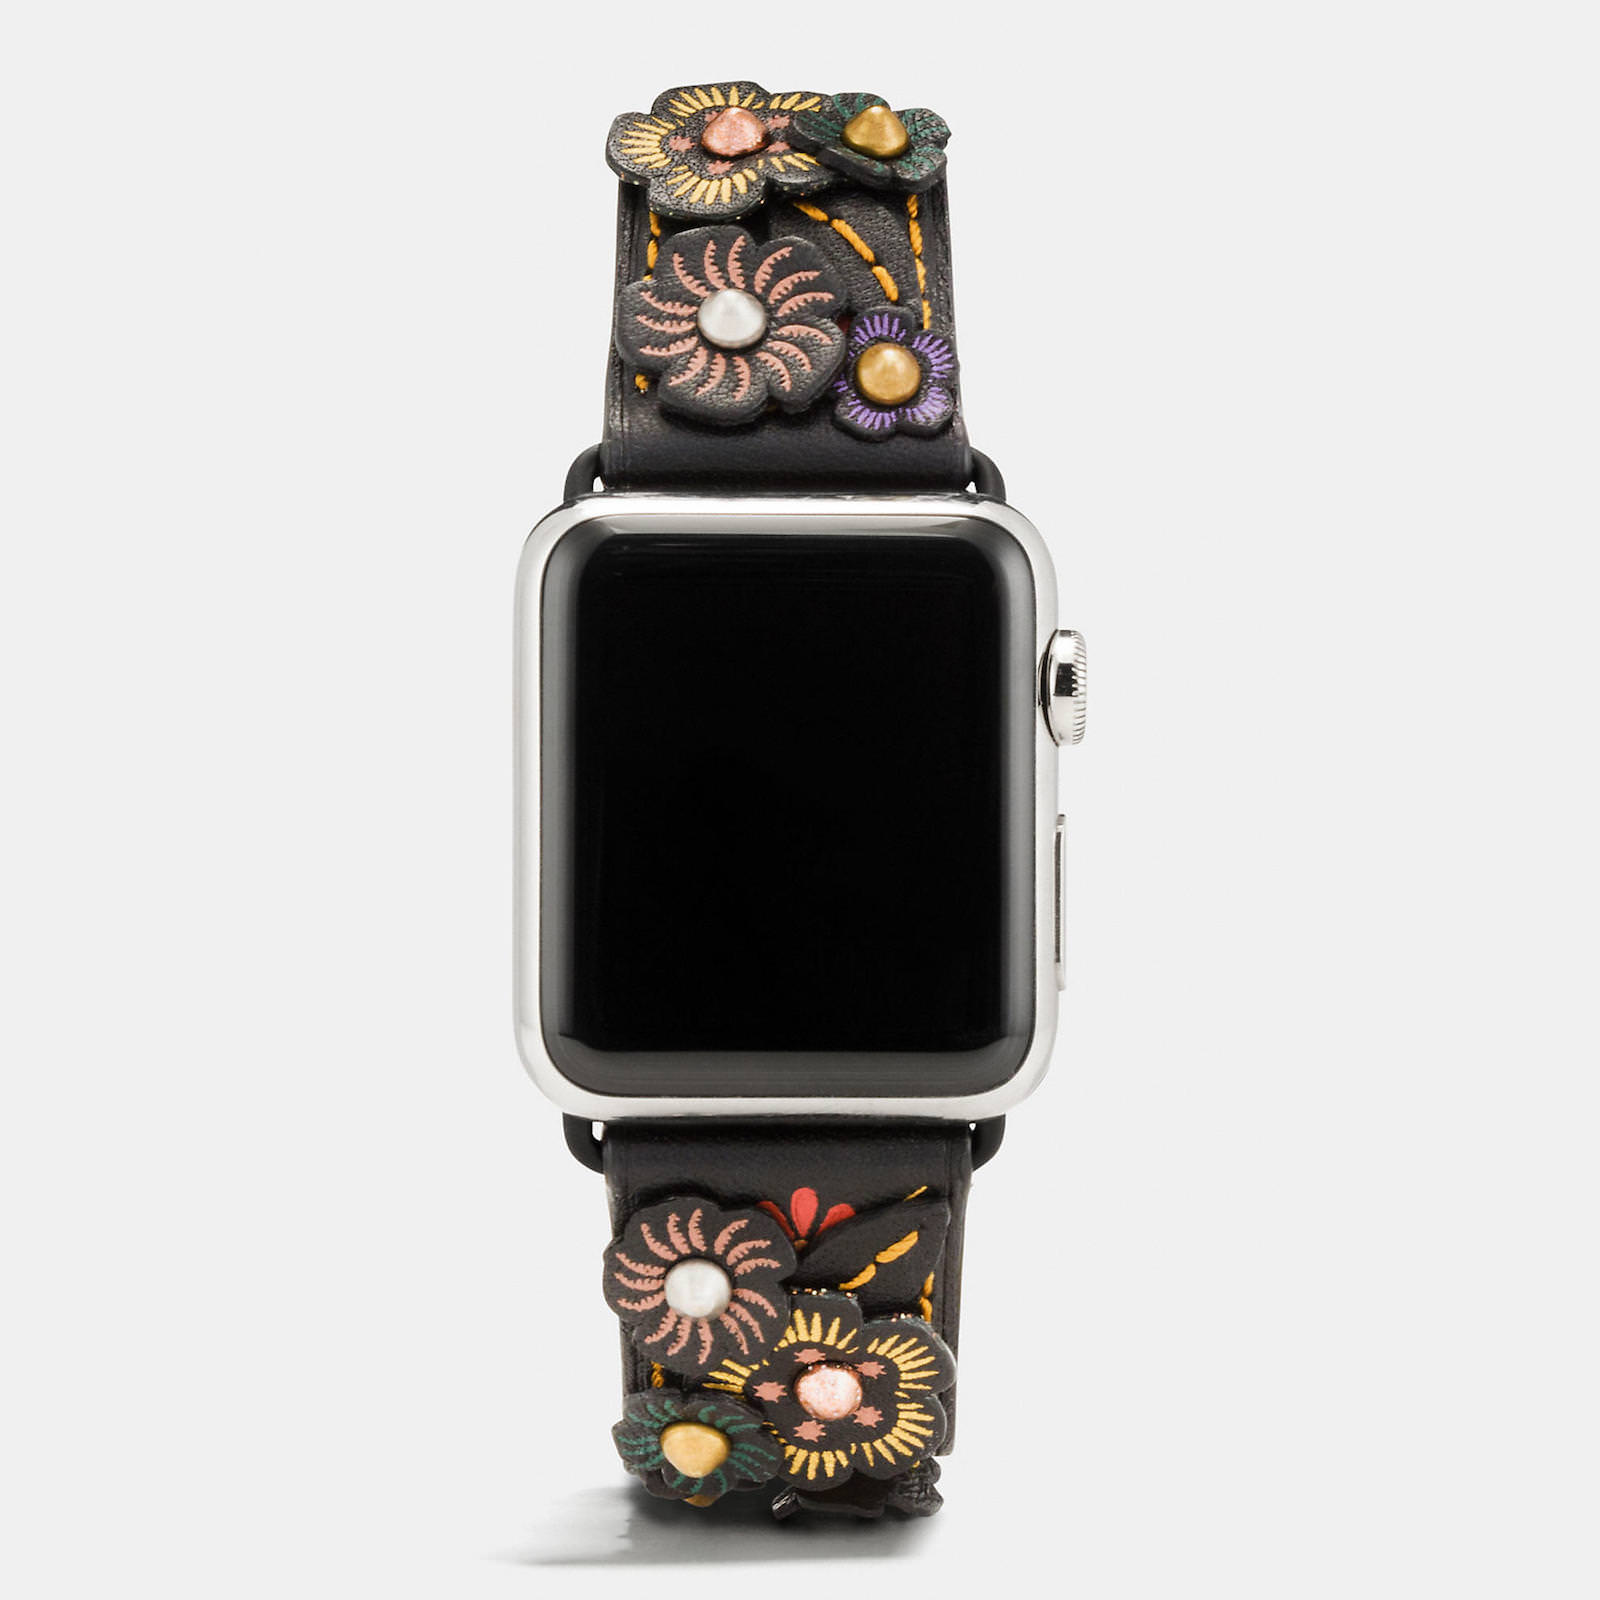 Apple-Watch-Coach-Band-Autumn-Season-2.jpeg